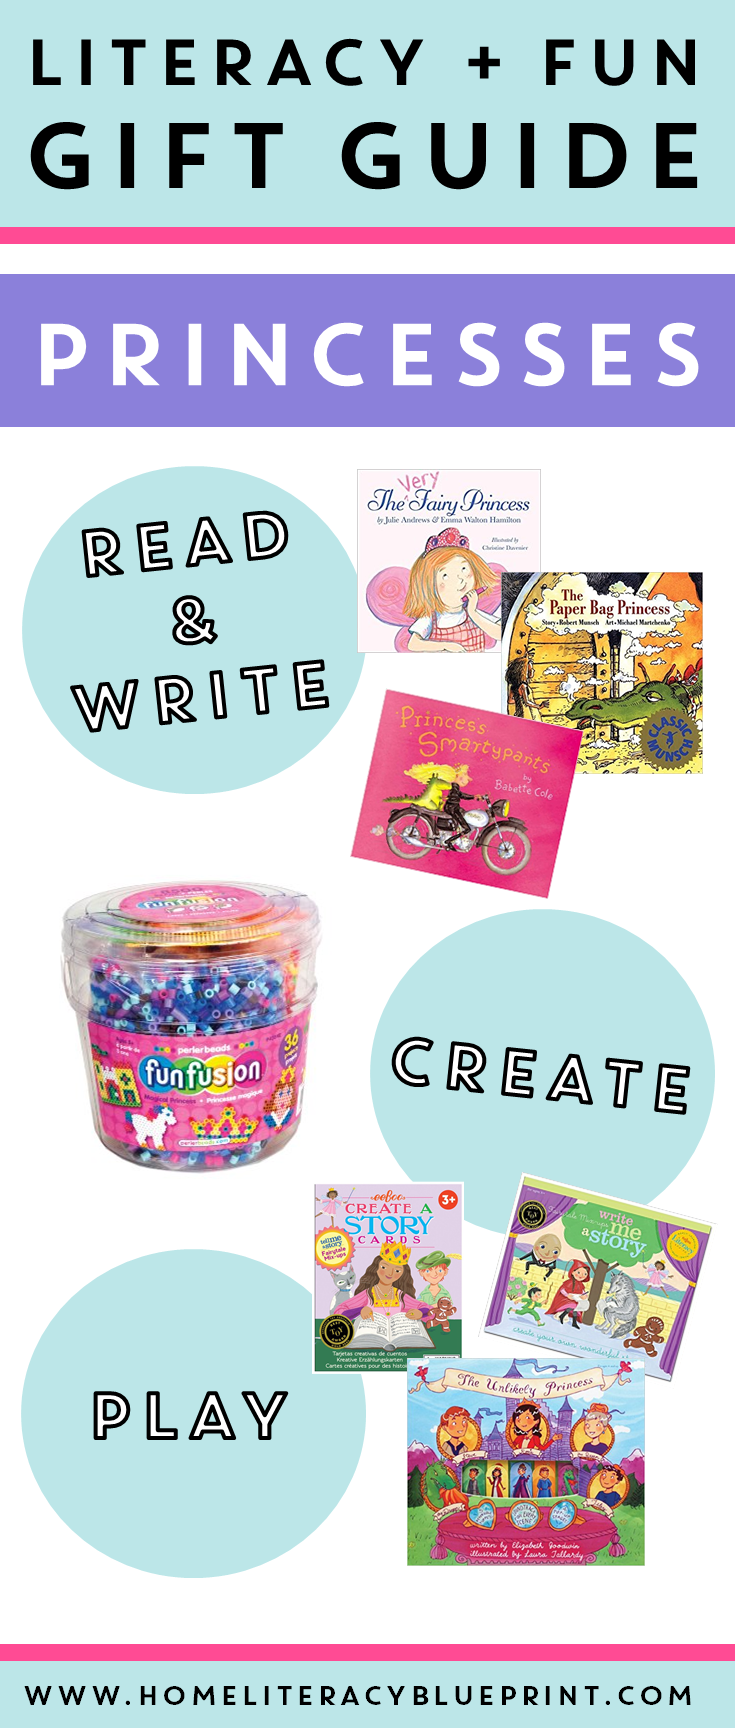 Literacy Fun Gift Guide - Princesses